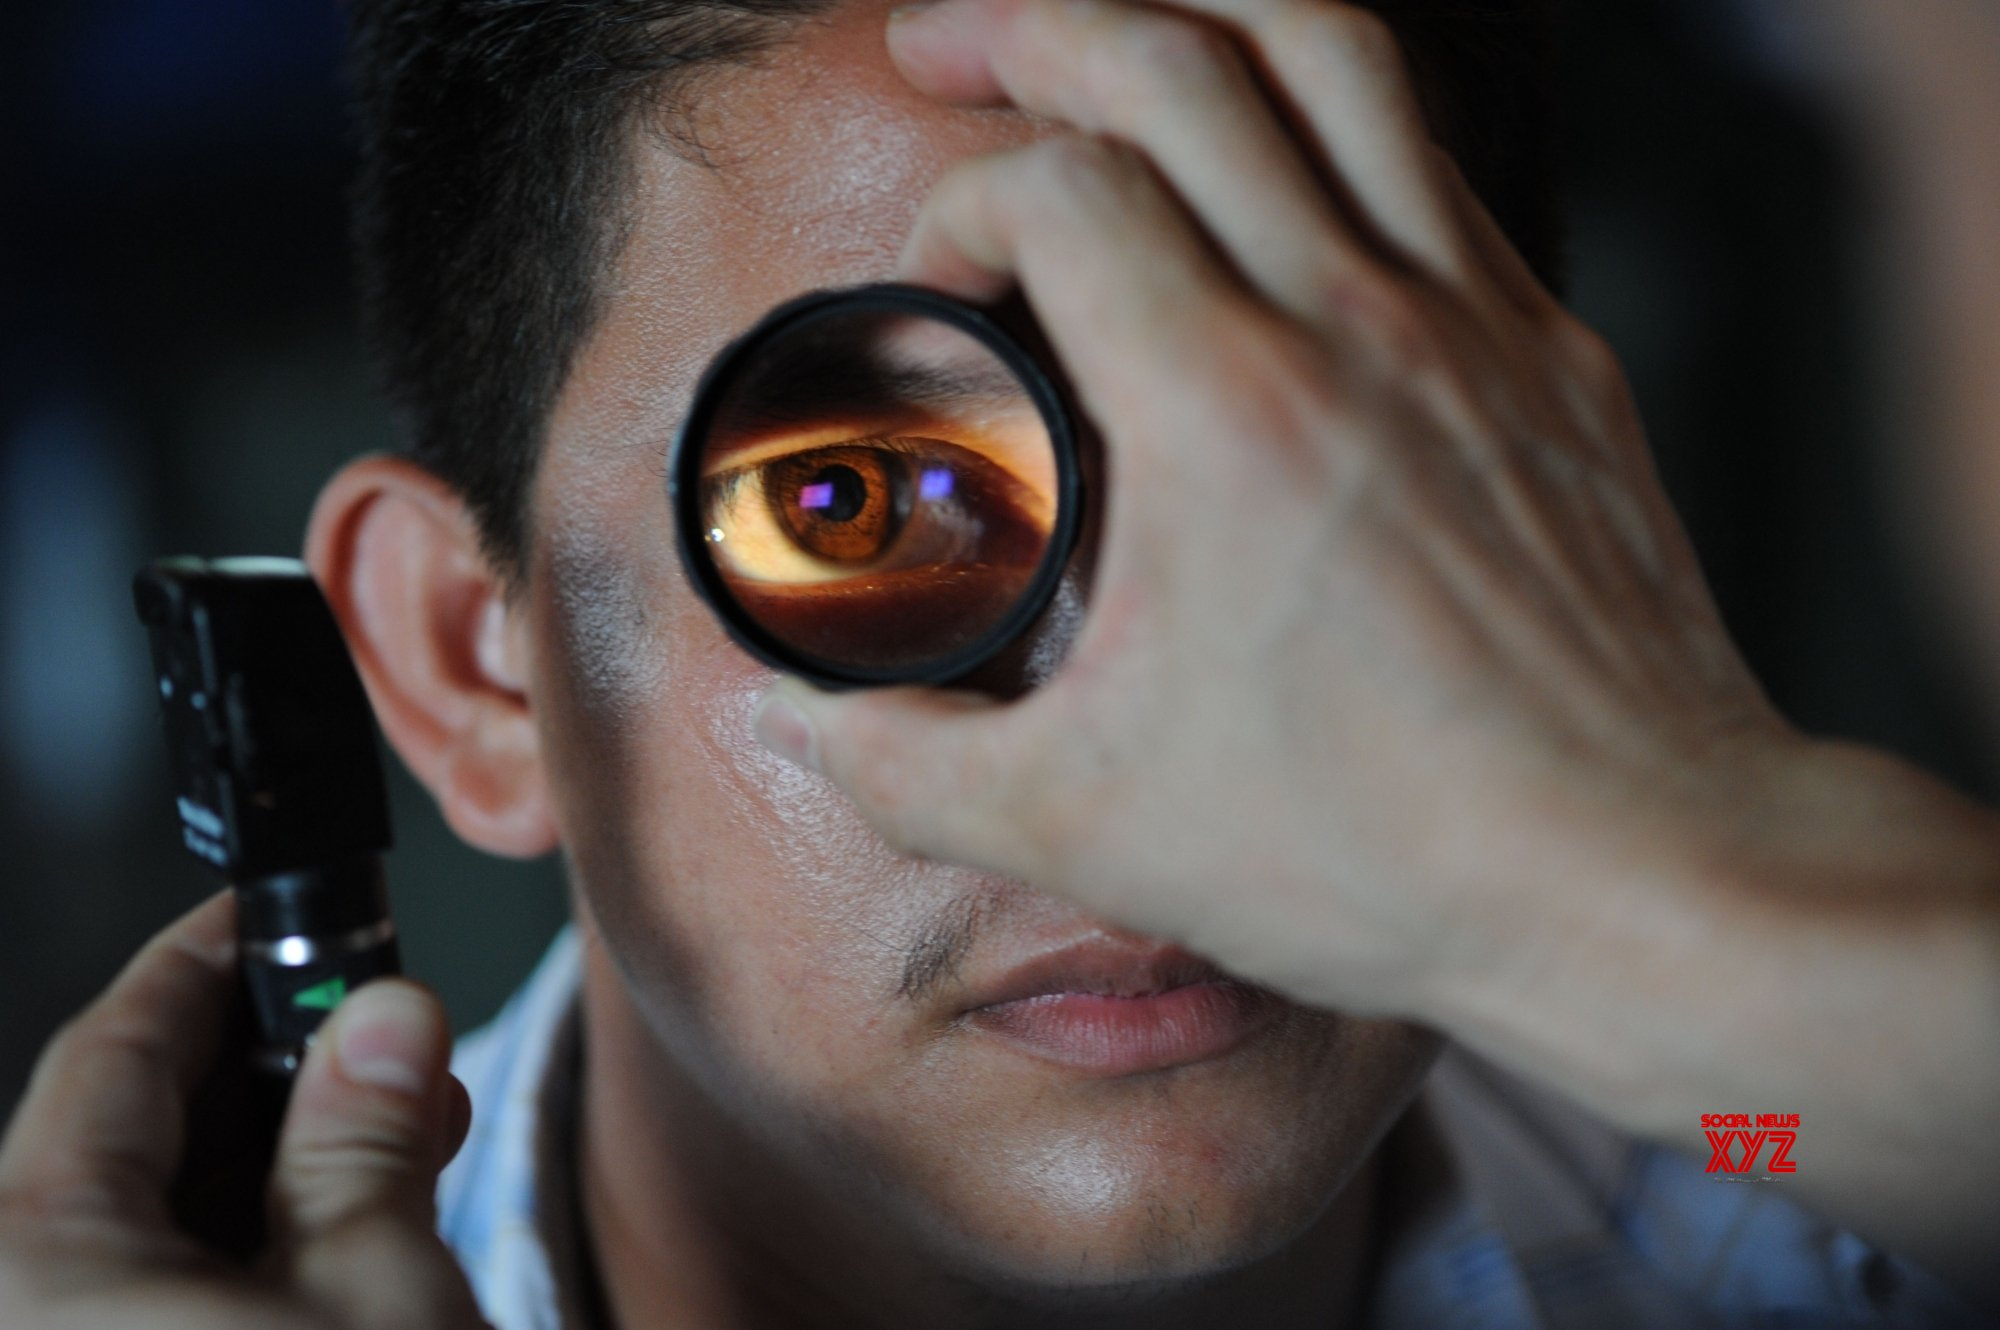 Only 1 in 5 Indians go for regular eye checkups: Study